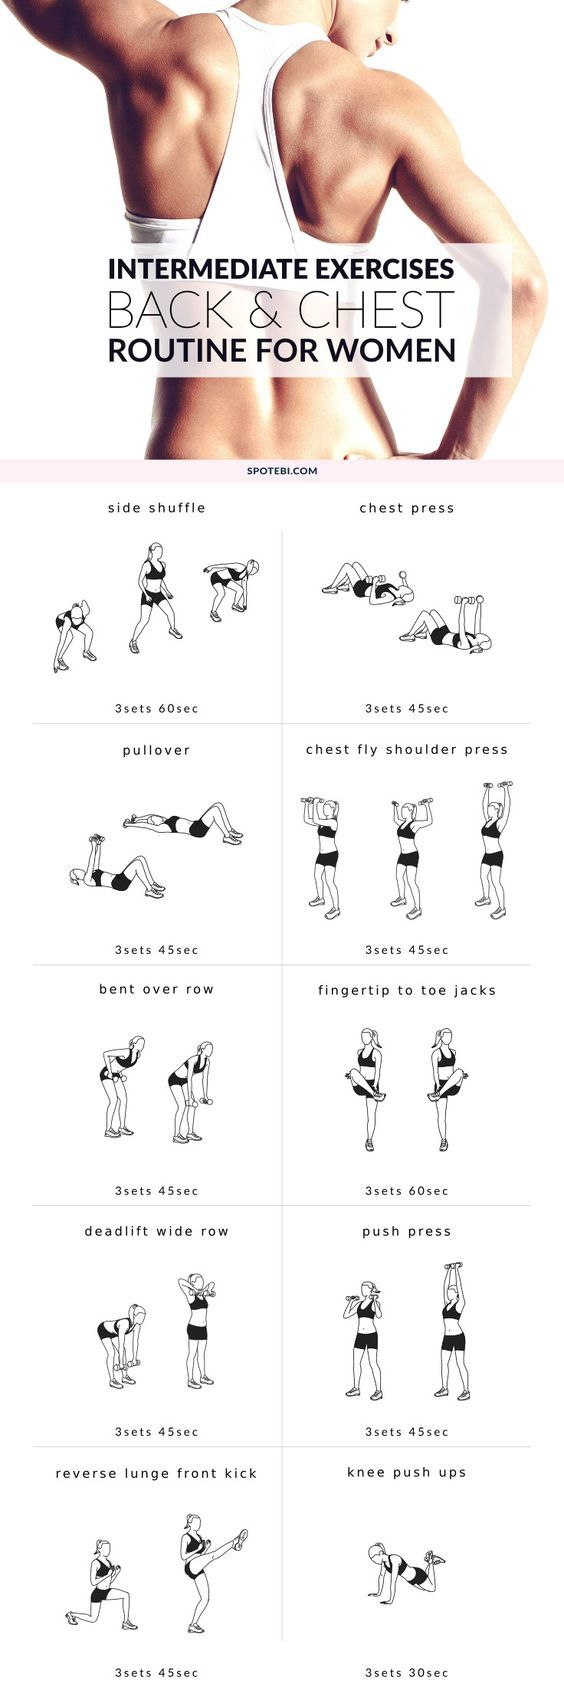 Improve your posture and increase your strength at home with this upper body intermediate workout. A back and chest routine for women that will help you tone your muscles and perk up your breasts! http://www.spotebi.com/workout-routines/upper-body-interme